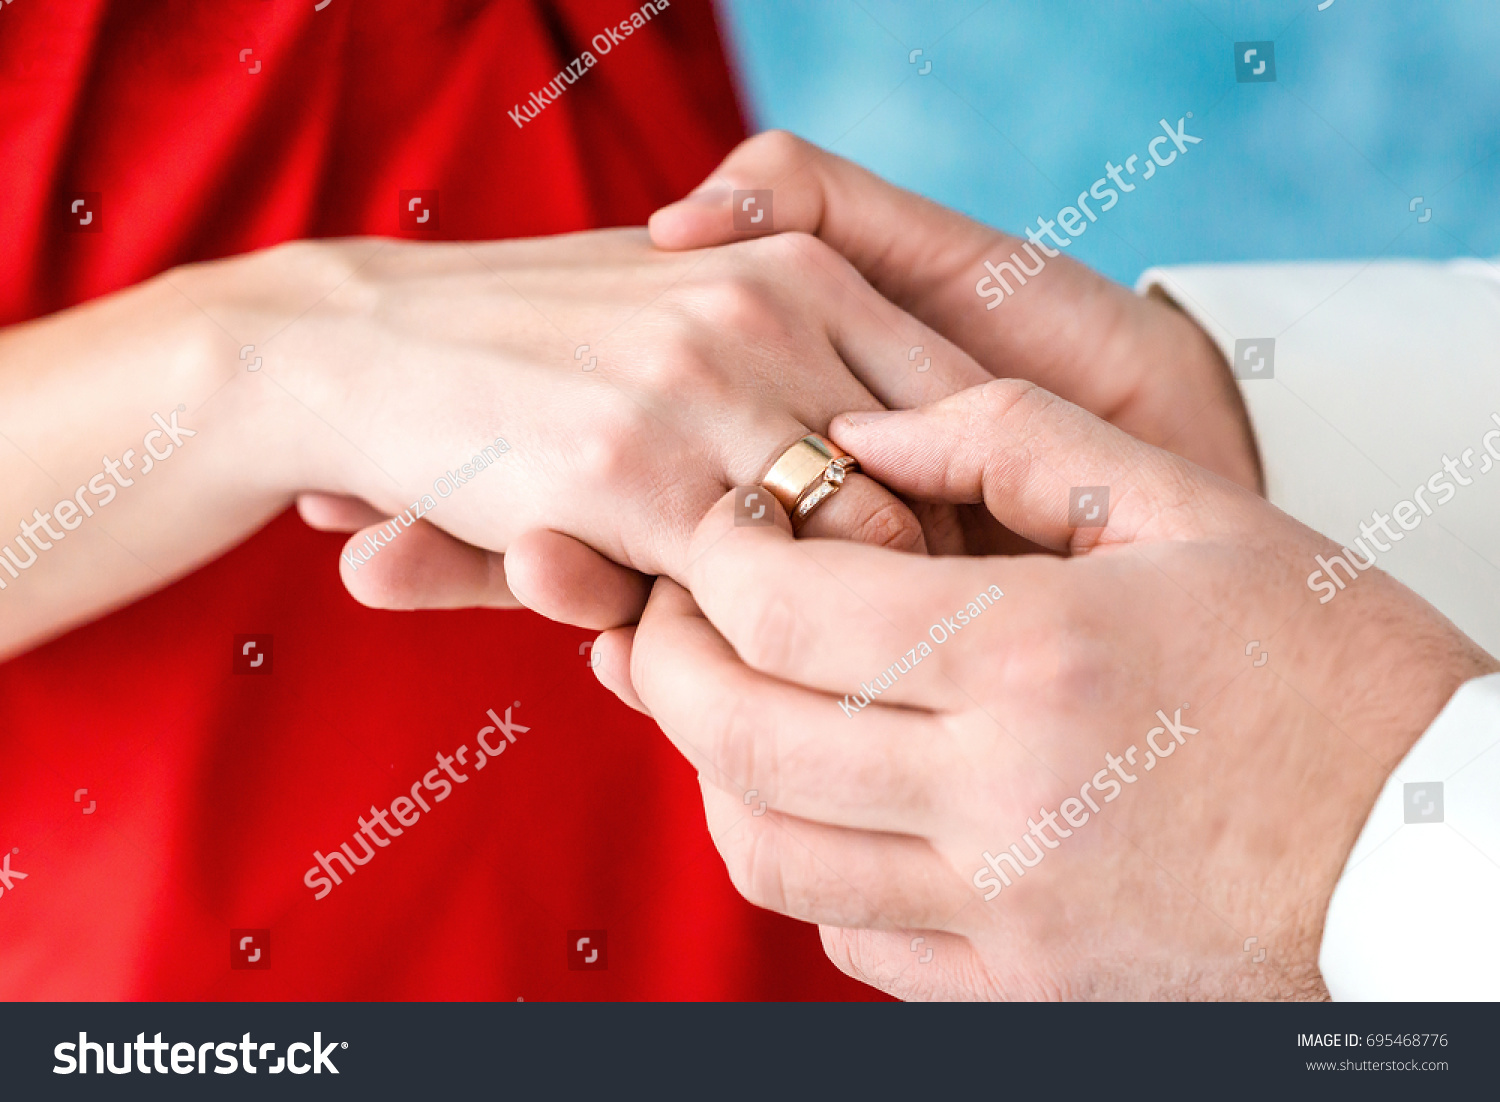 Close Shoot Grooms Hand Putting Wedding Stock Photo 695468776 ...